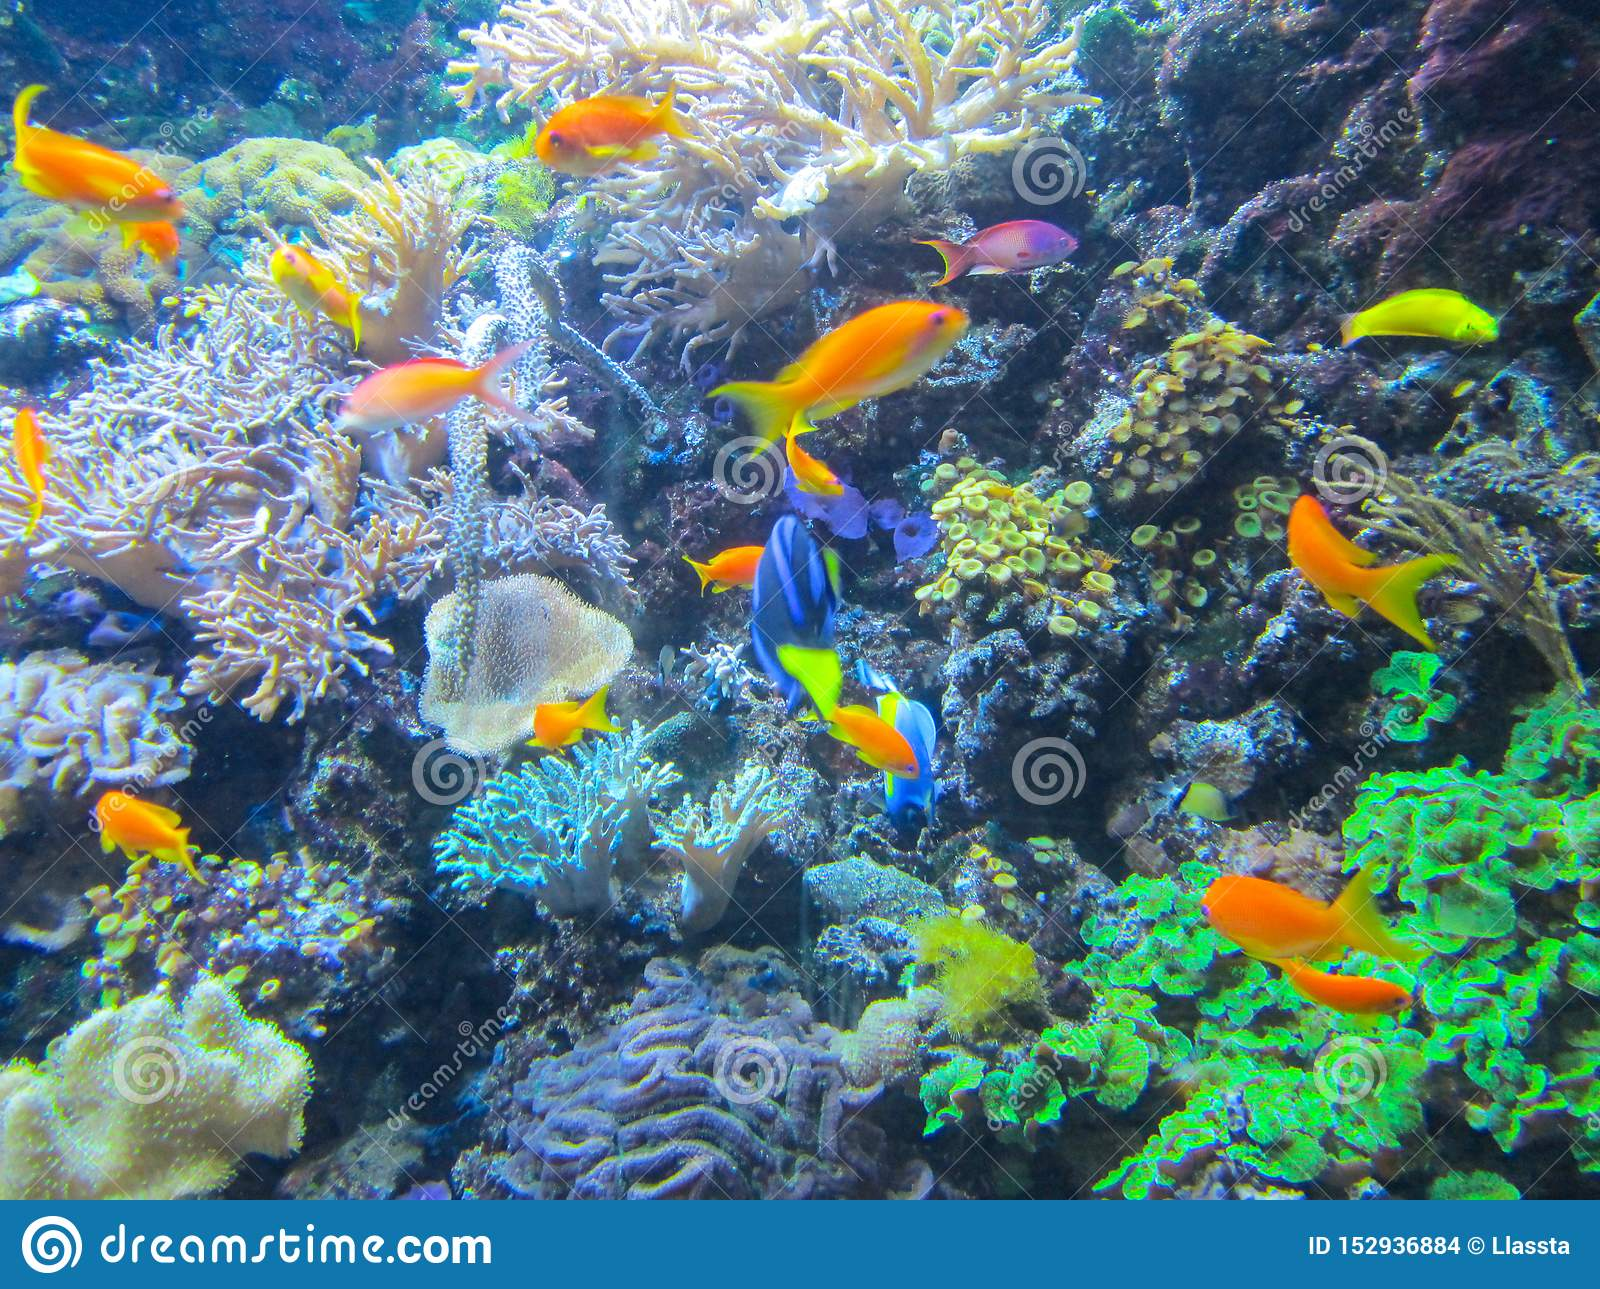 A colorful aquarium with beautiful fish, plants and corals